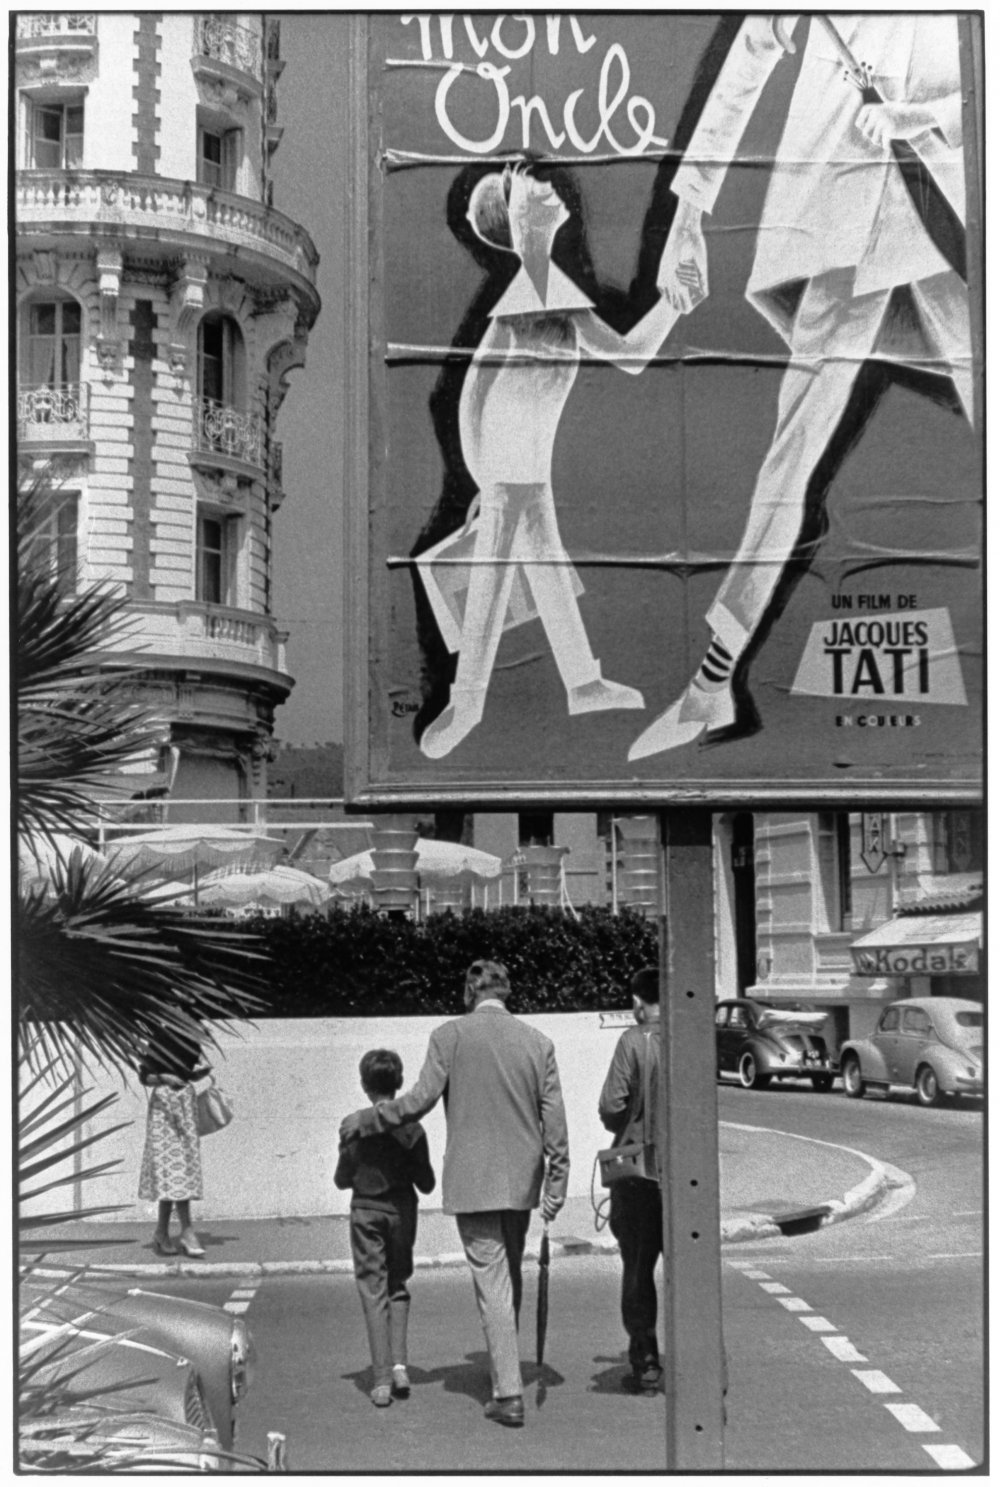 In 1958, both Henri Cartier-Bresson and Jacques Tati came to Cannes for the 11th Cannes Film Festival. The meeting of the two resulted in this wonderful image celebrating Tati's film Mon Oncle.